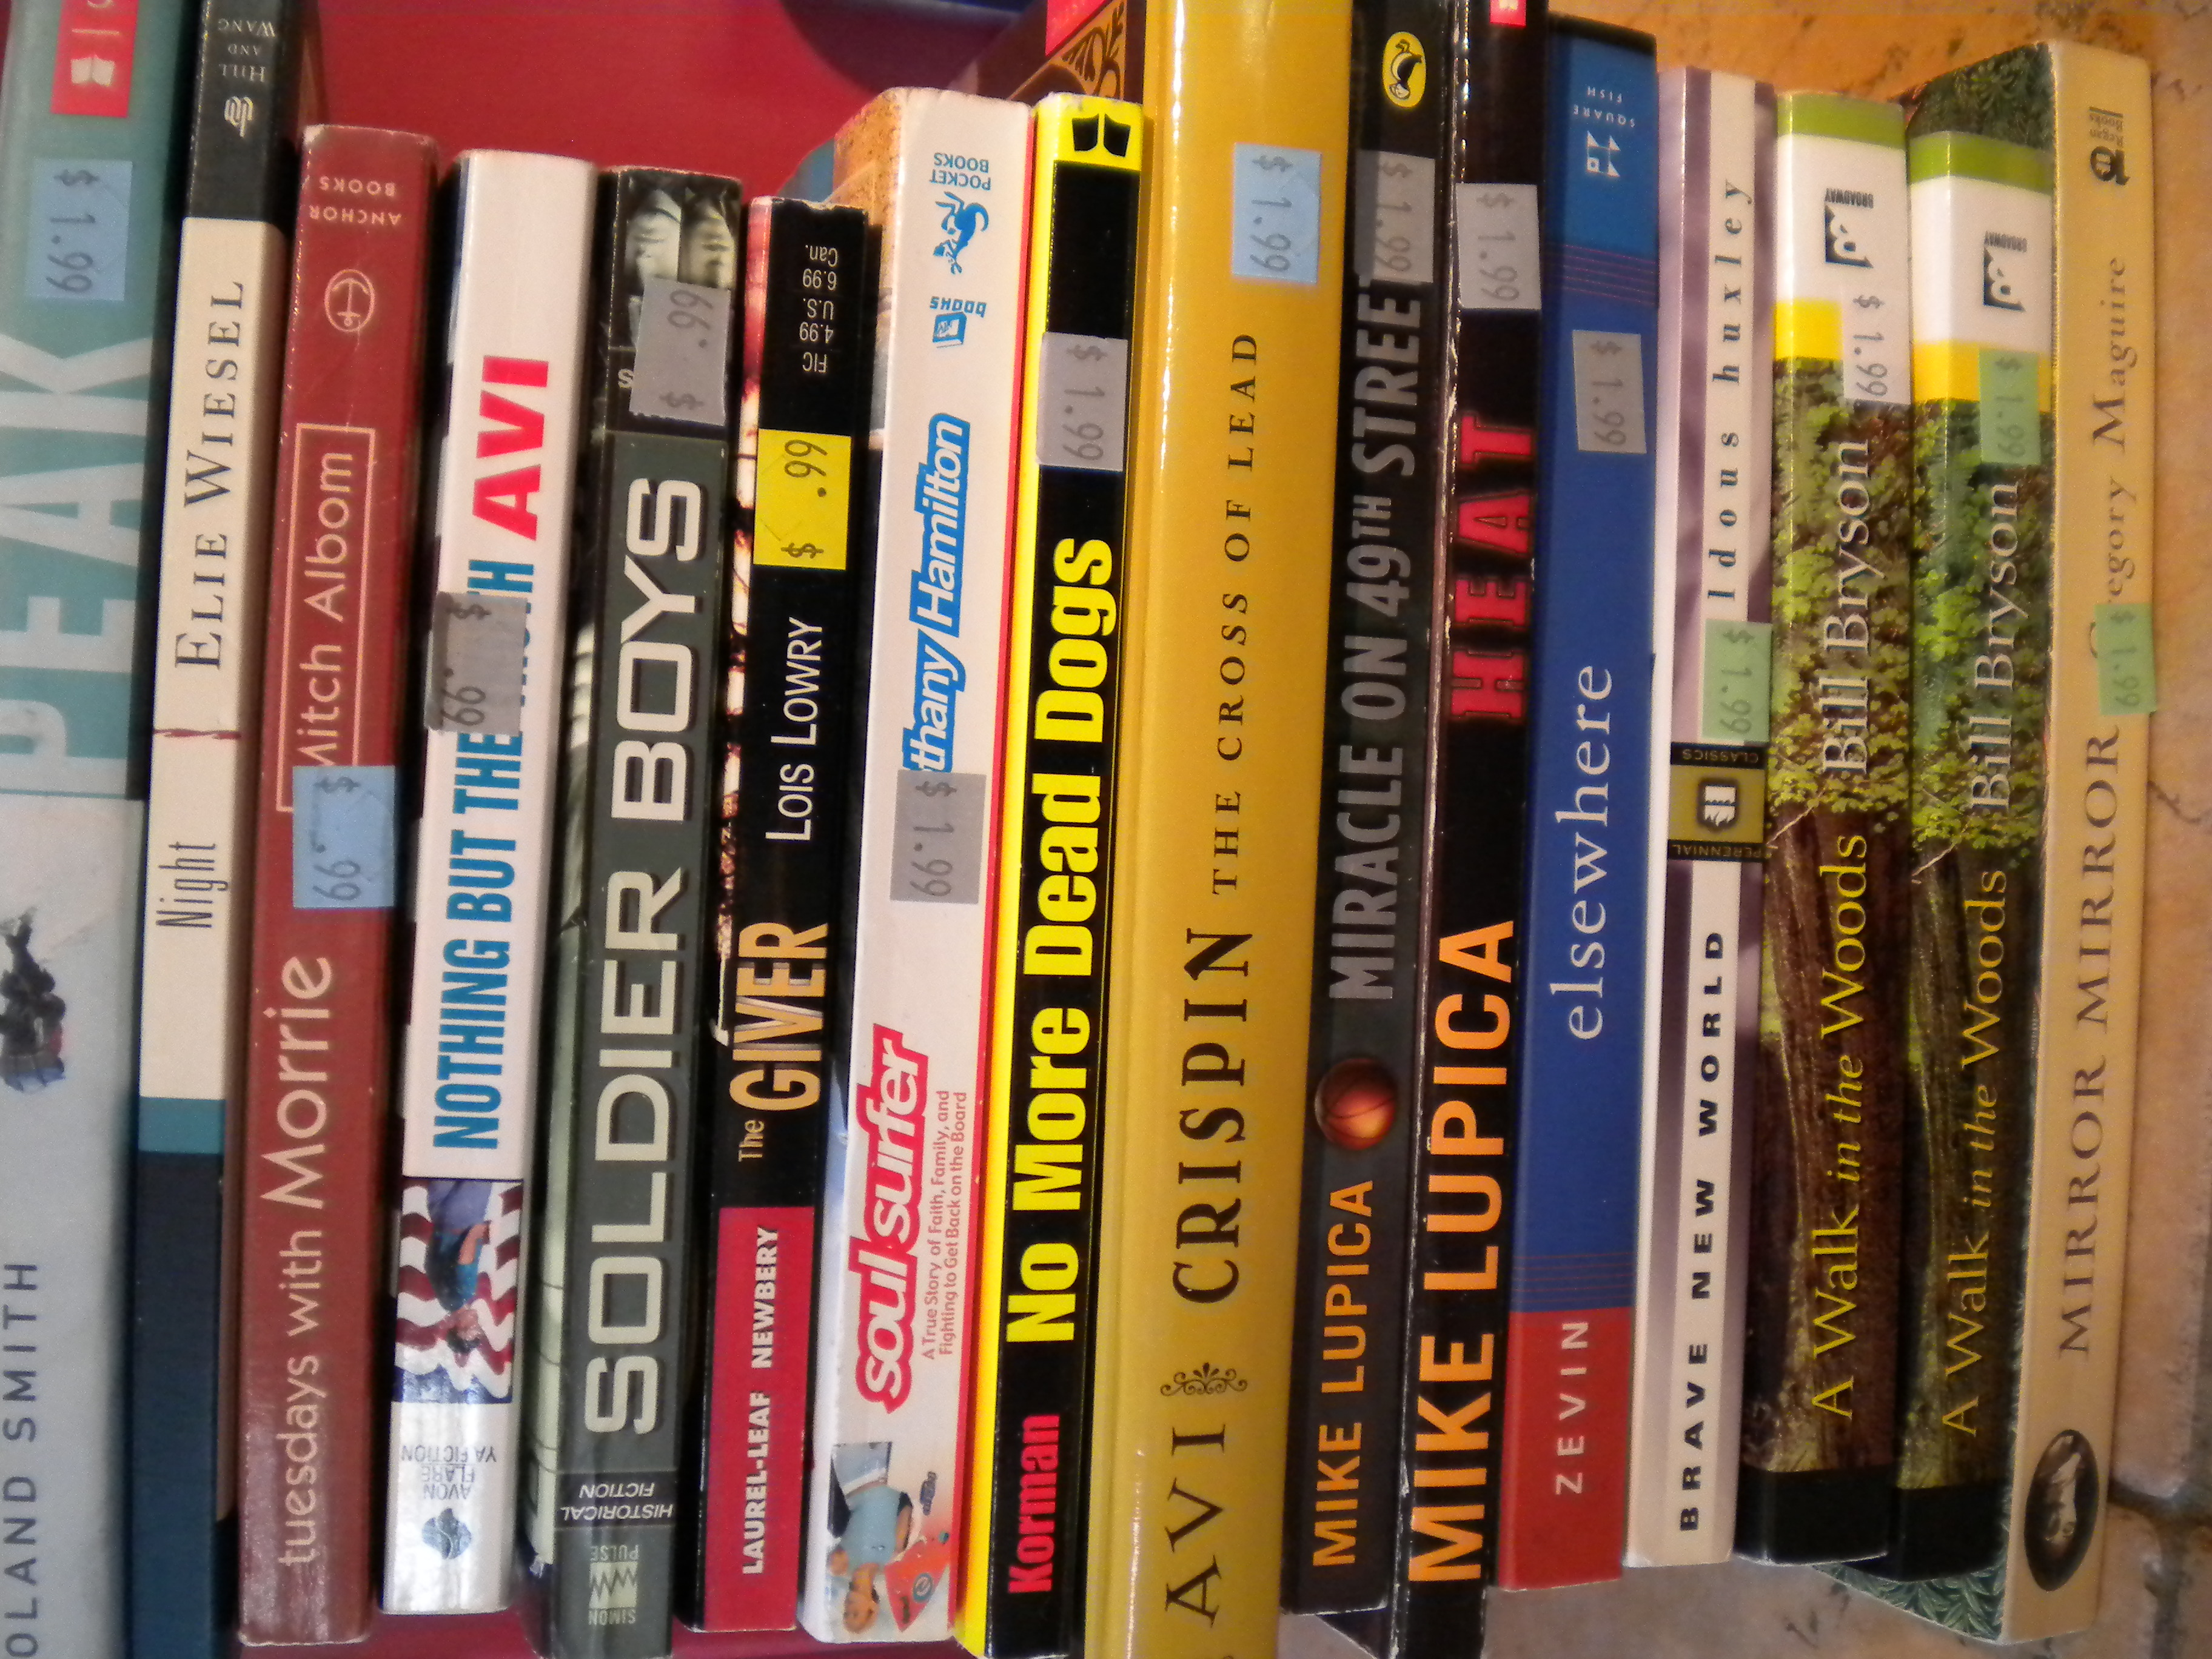 Southington Goodwill Store Book Haul16 Quality Texts For $3333!